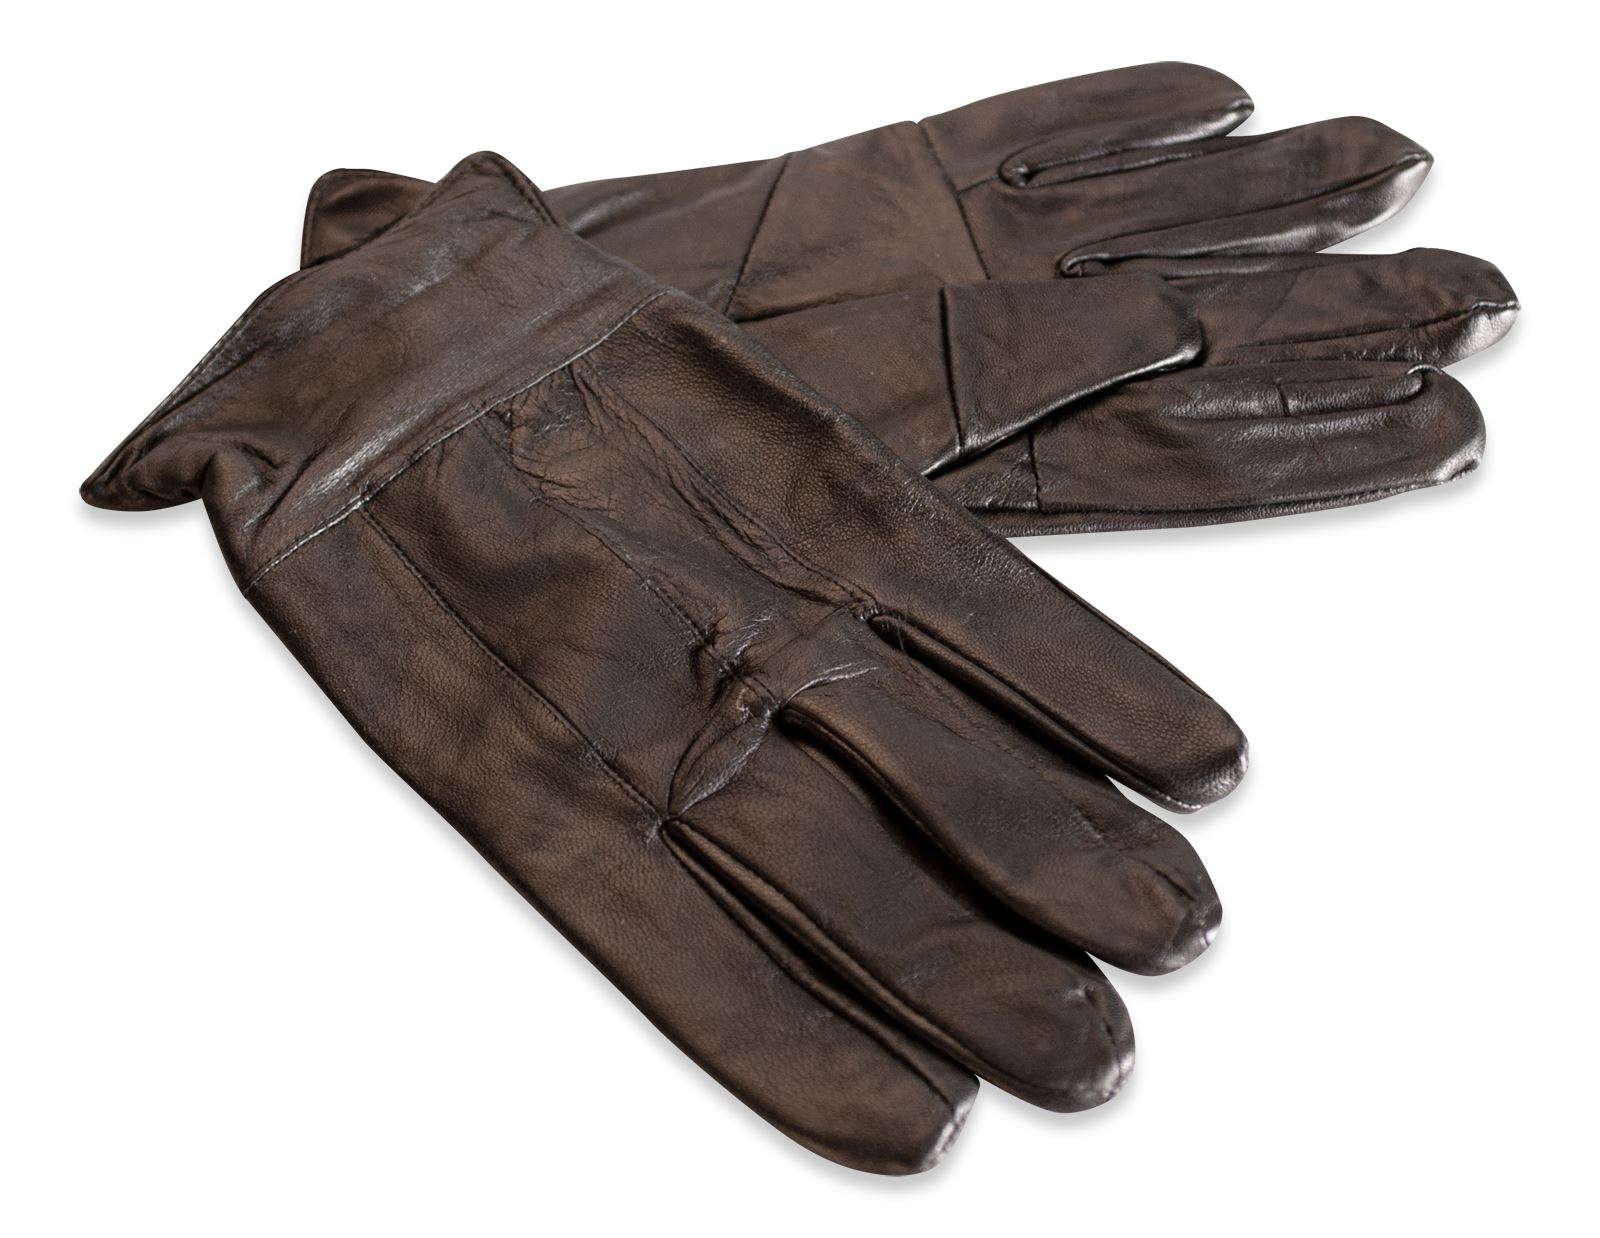 Mens leather gloves with cuff - Grab A Bargain With These Soft Leather Gloves Designed With Elasticated Cuff And Fabric Lining For Extra Warmth